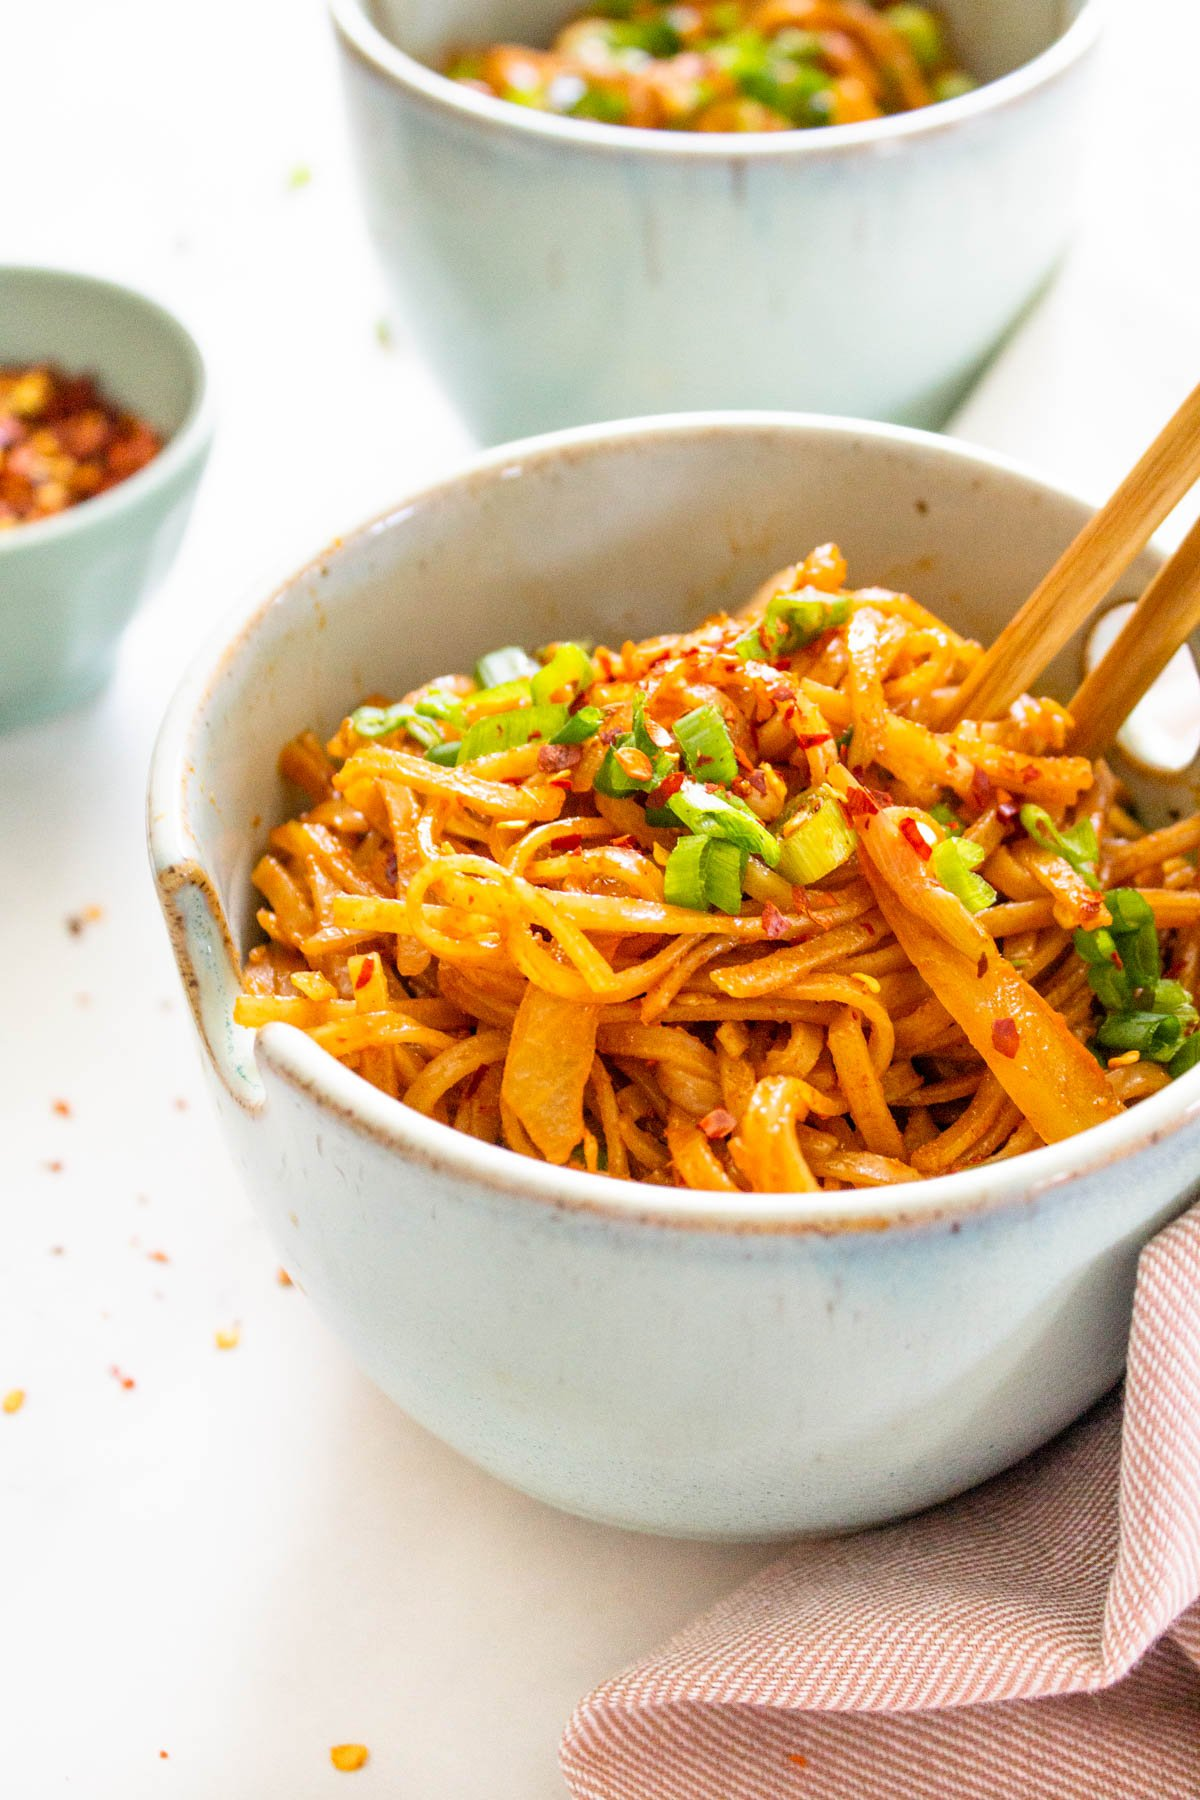 Spicy Thai Noodles This Savory Vegan